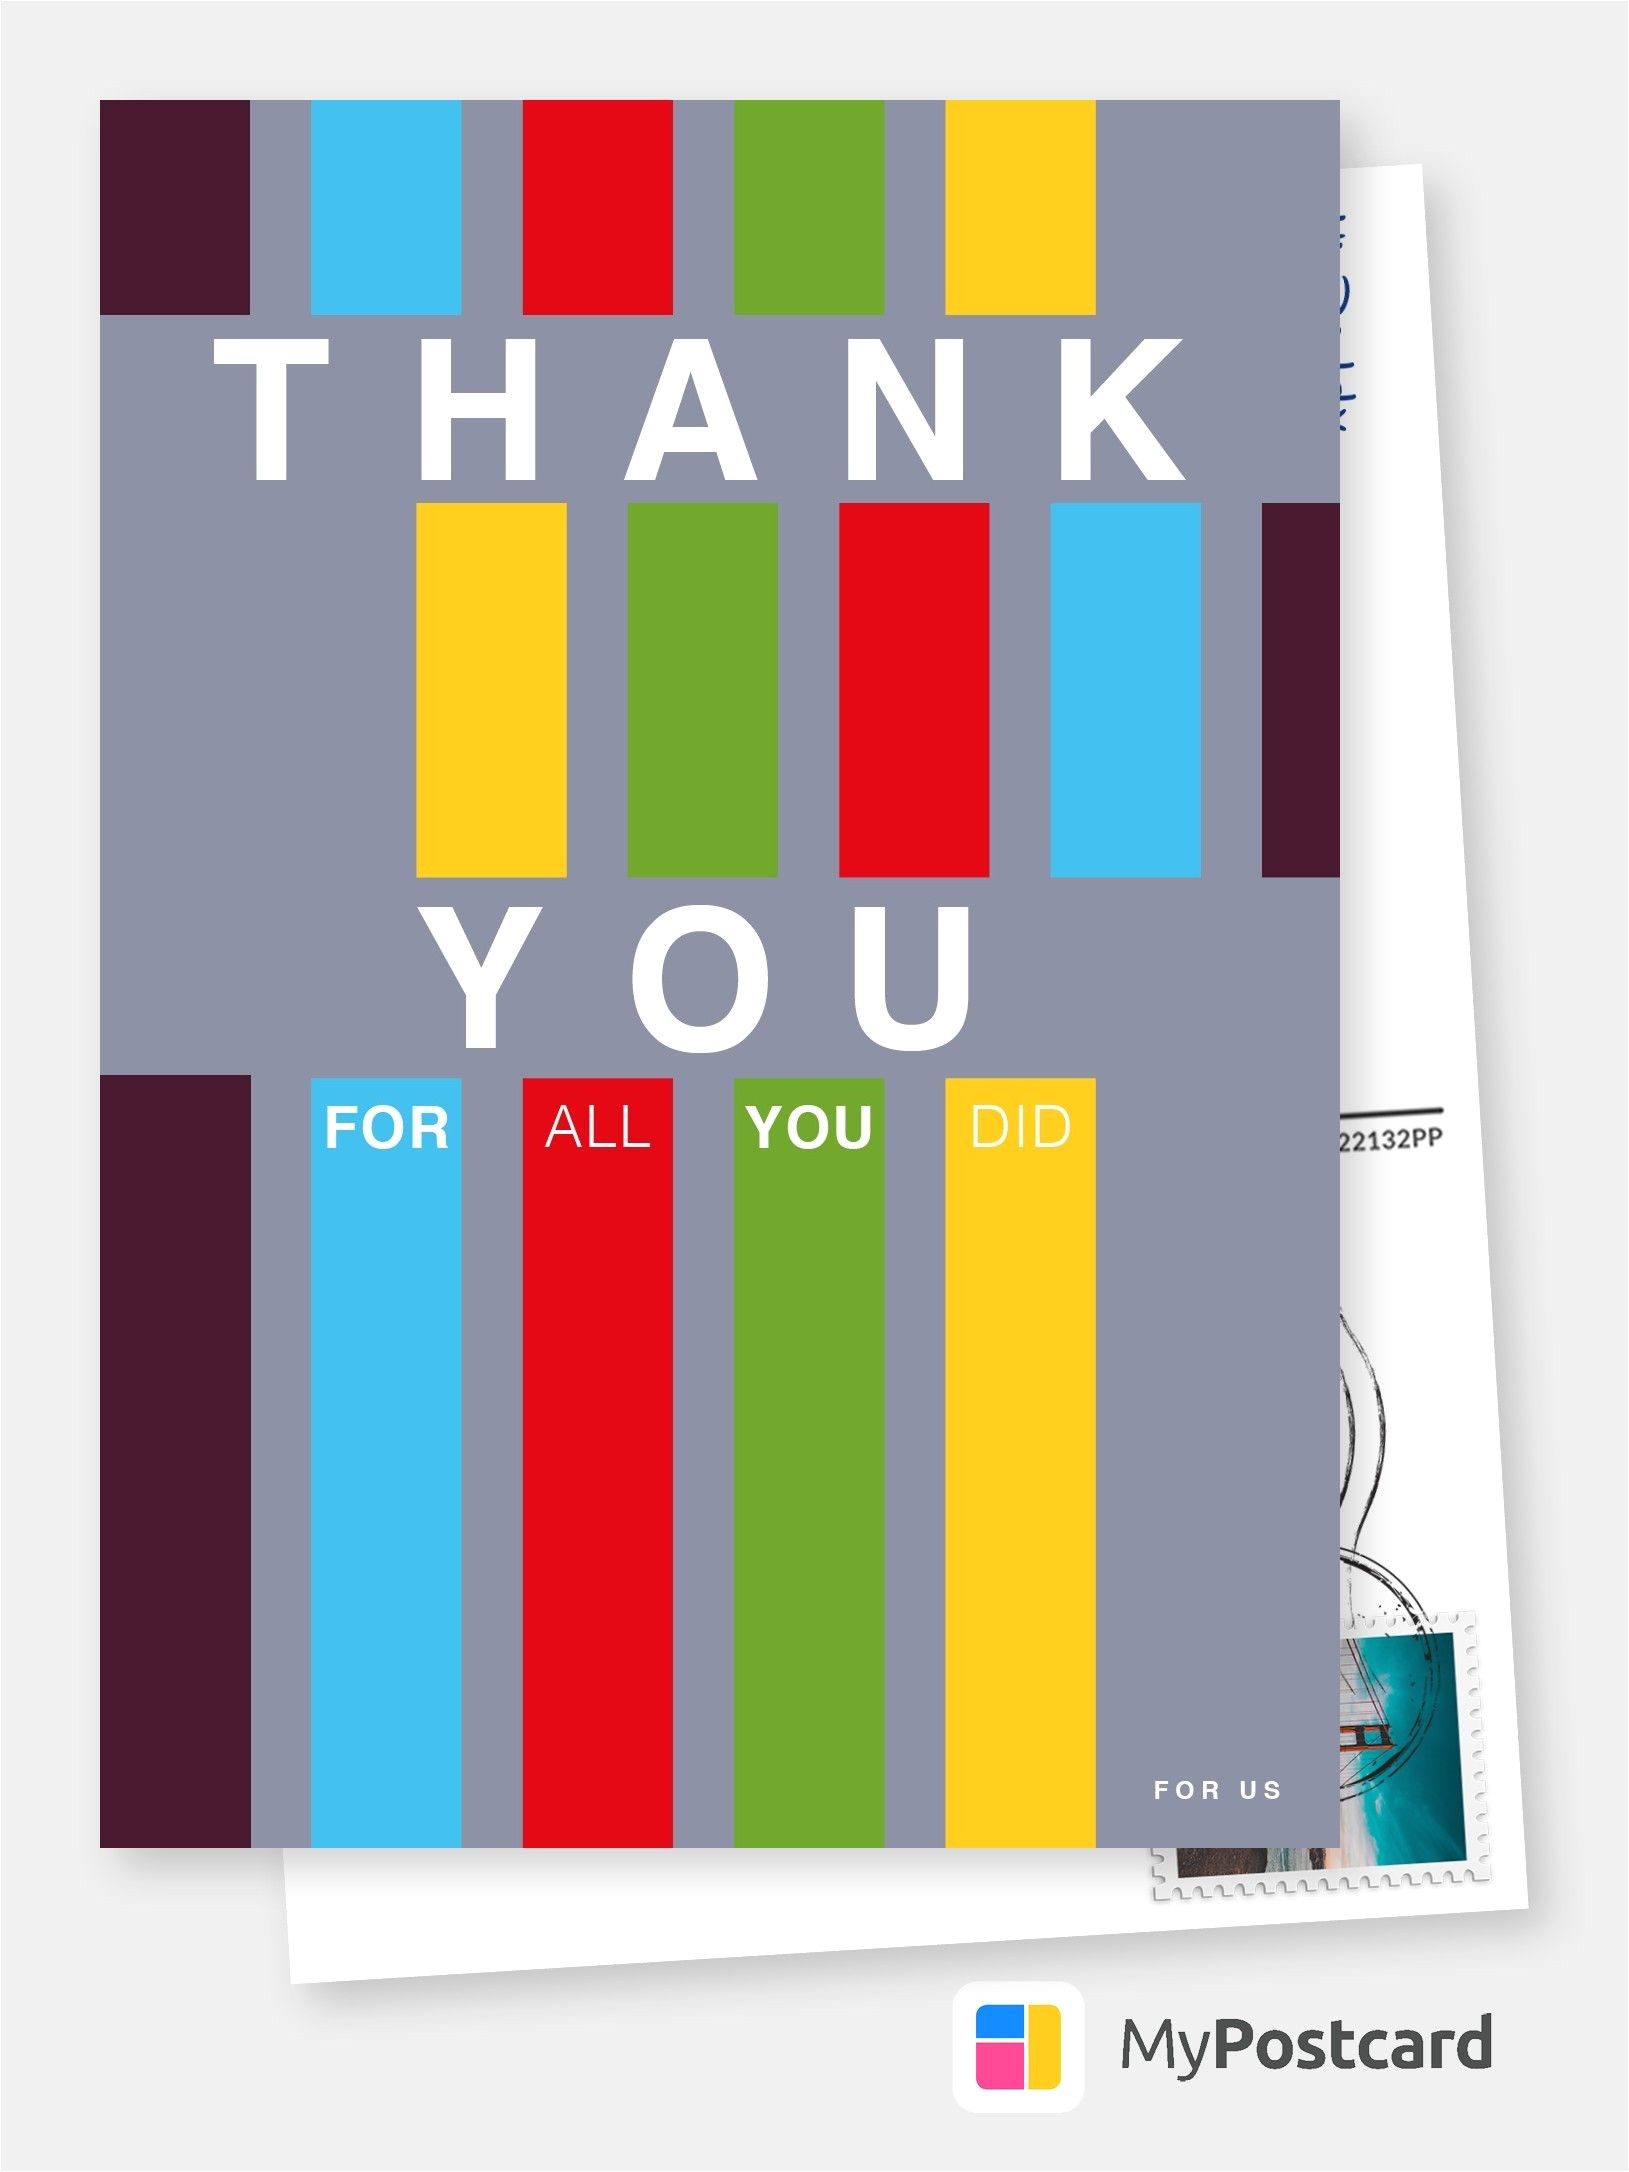 Thank You Greeting Card Messages Thank You for All You Did Ermutigungskarten Spruche